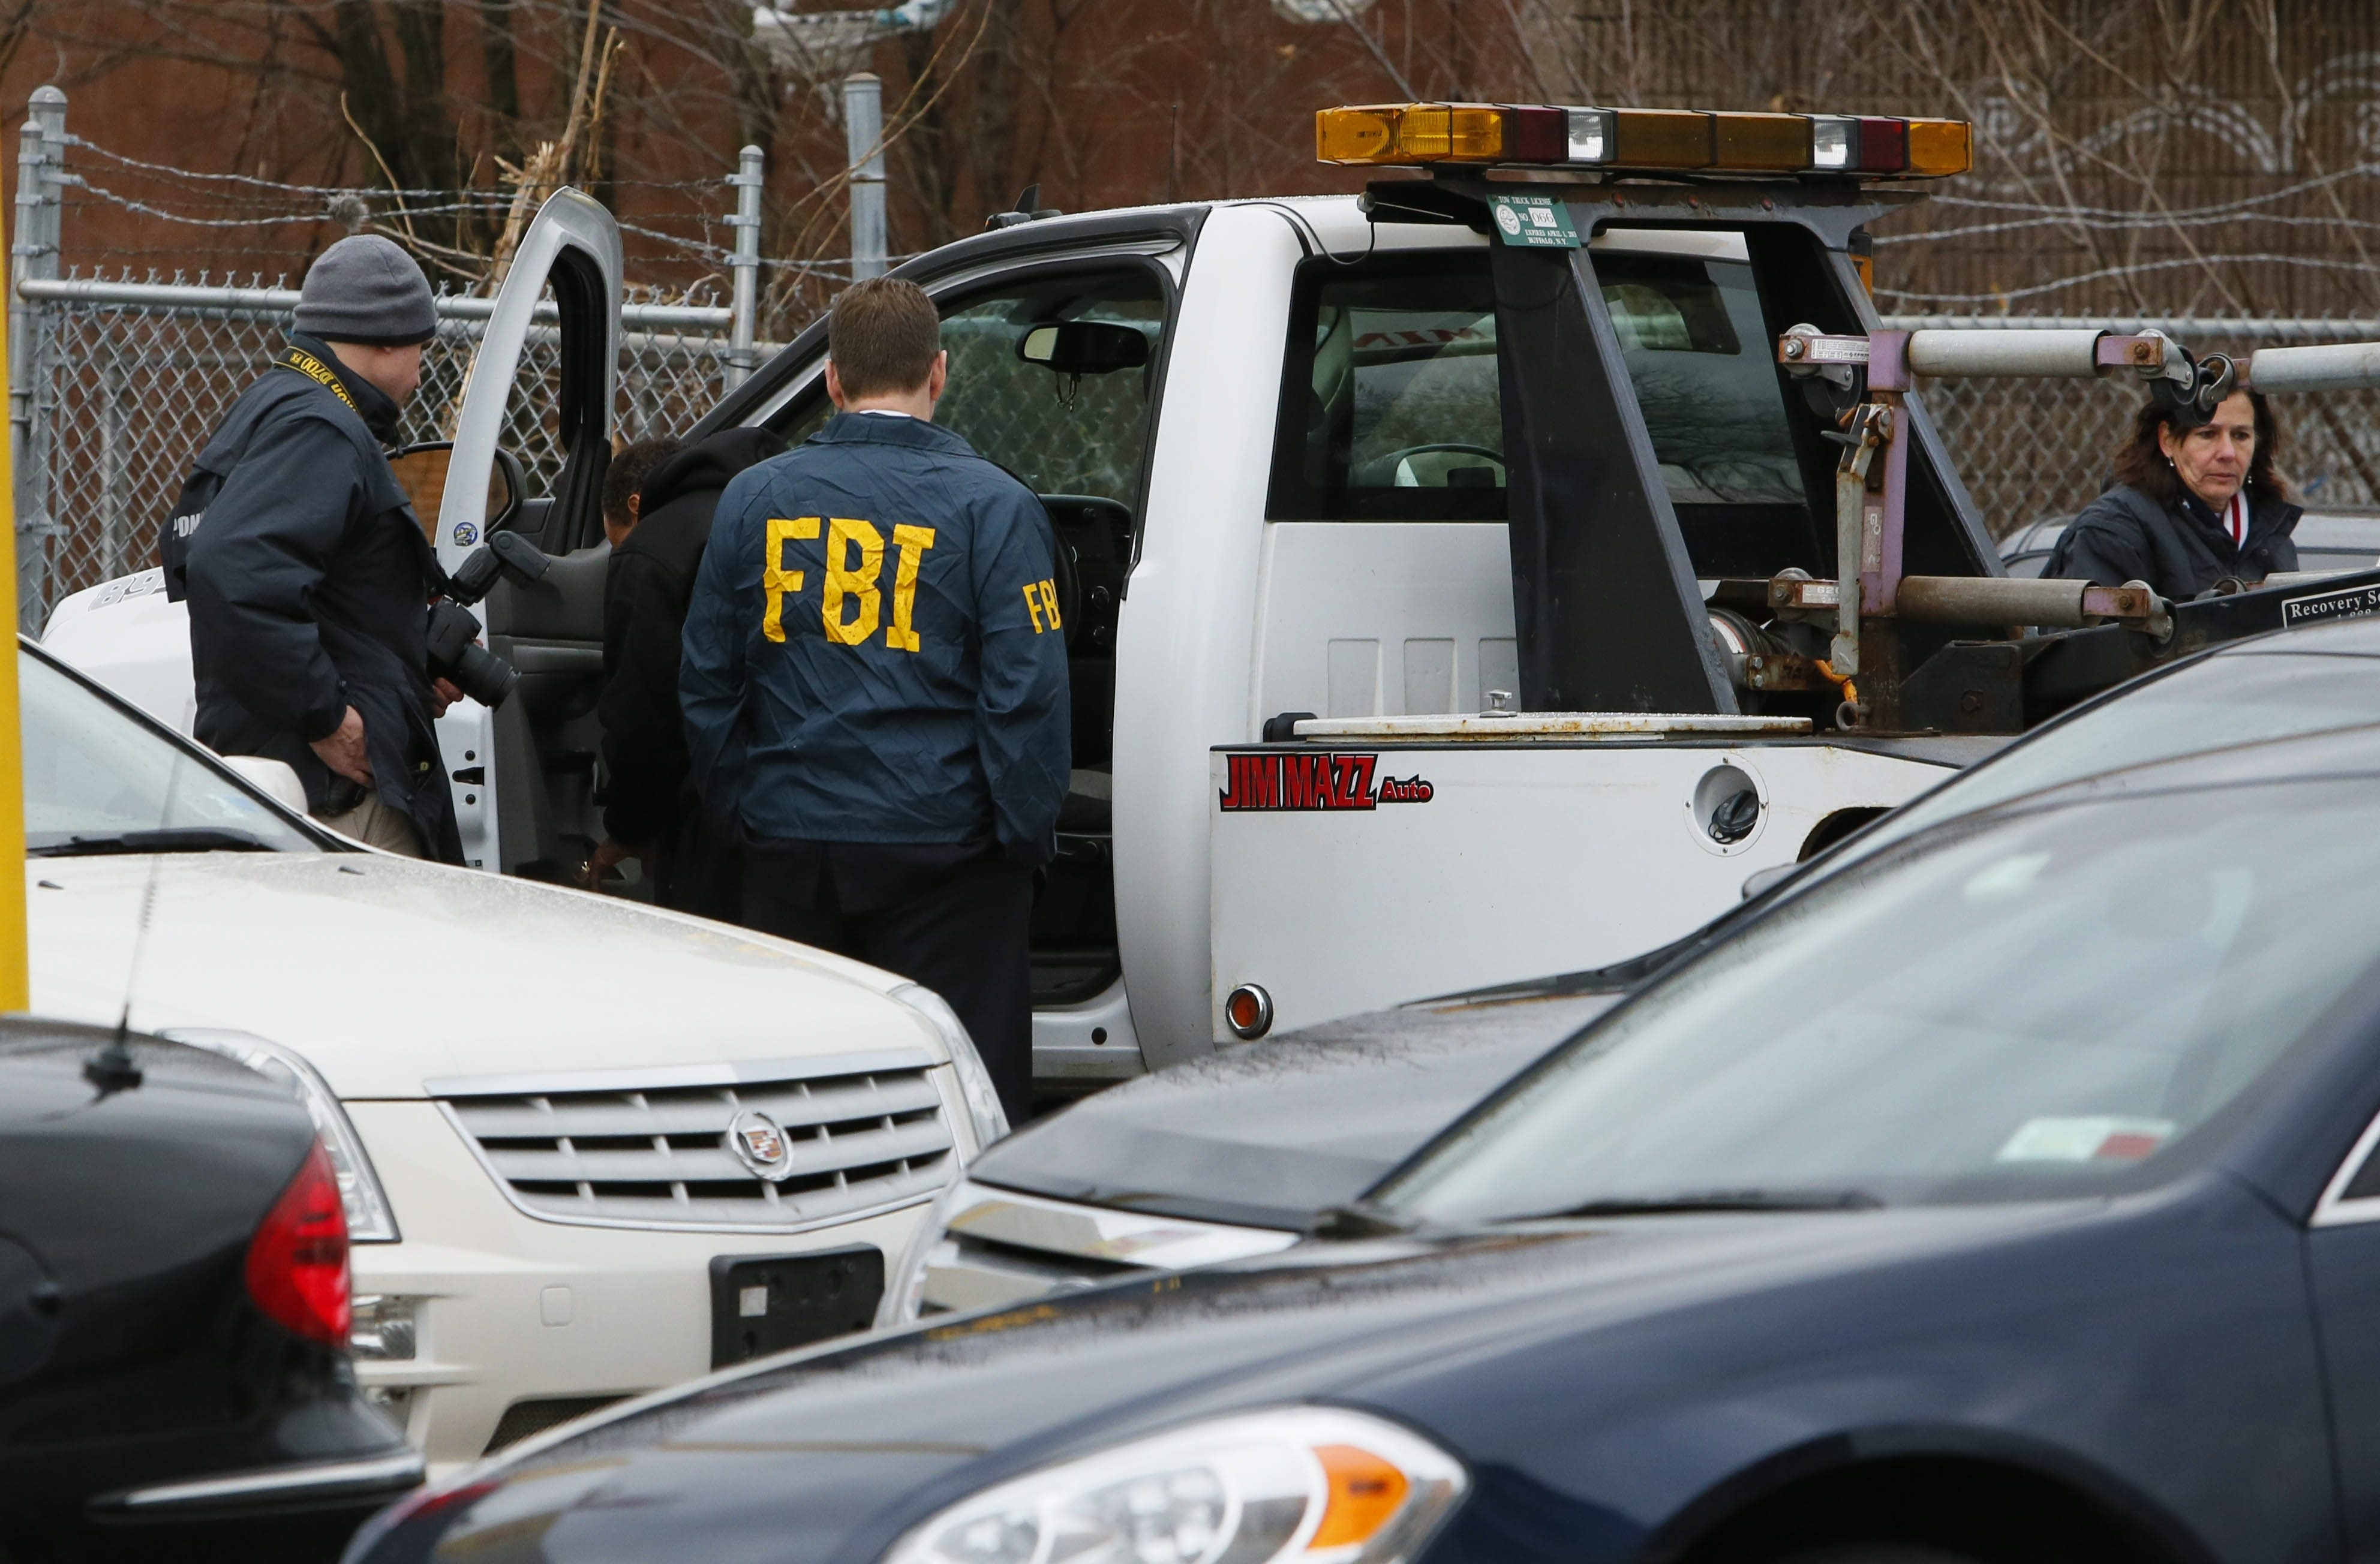 Members of the FBI evidence response team collect evidence while executing a search warrant in December at Jim Mazz Auto on Bailey Avenue in the city's Lovejoy neighborhood. Jim Mazzariello, the owner of Jim Mazz Auto, was indicted Wednesday on felony charges of bribery and filing false tax returns.